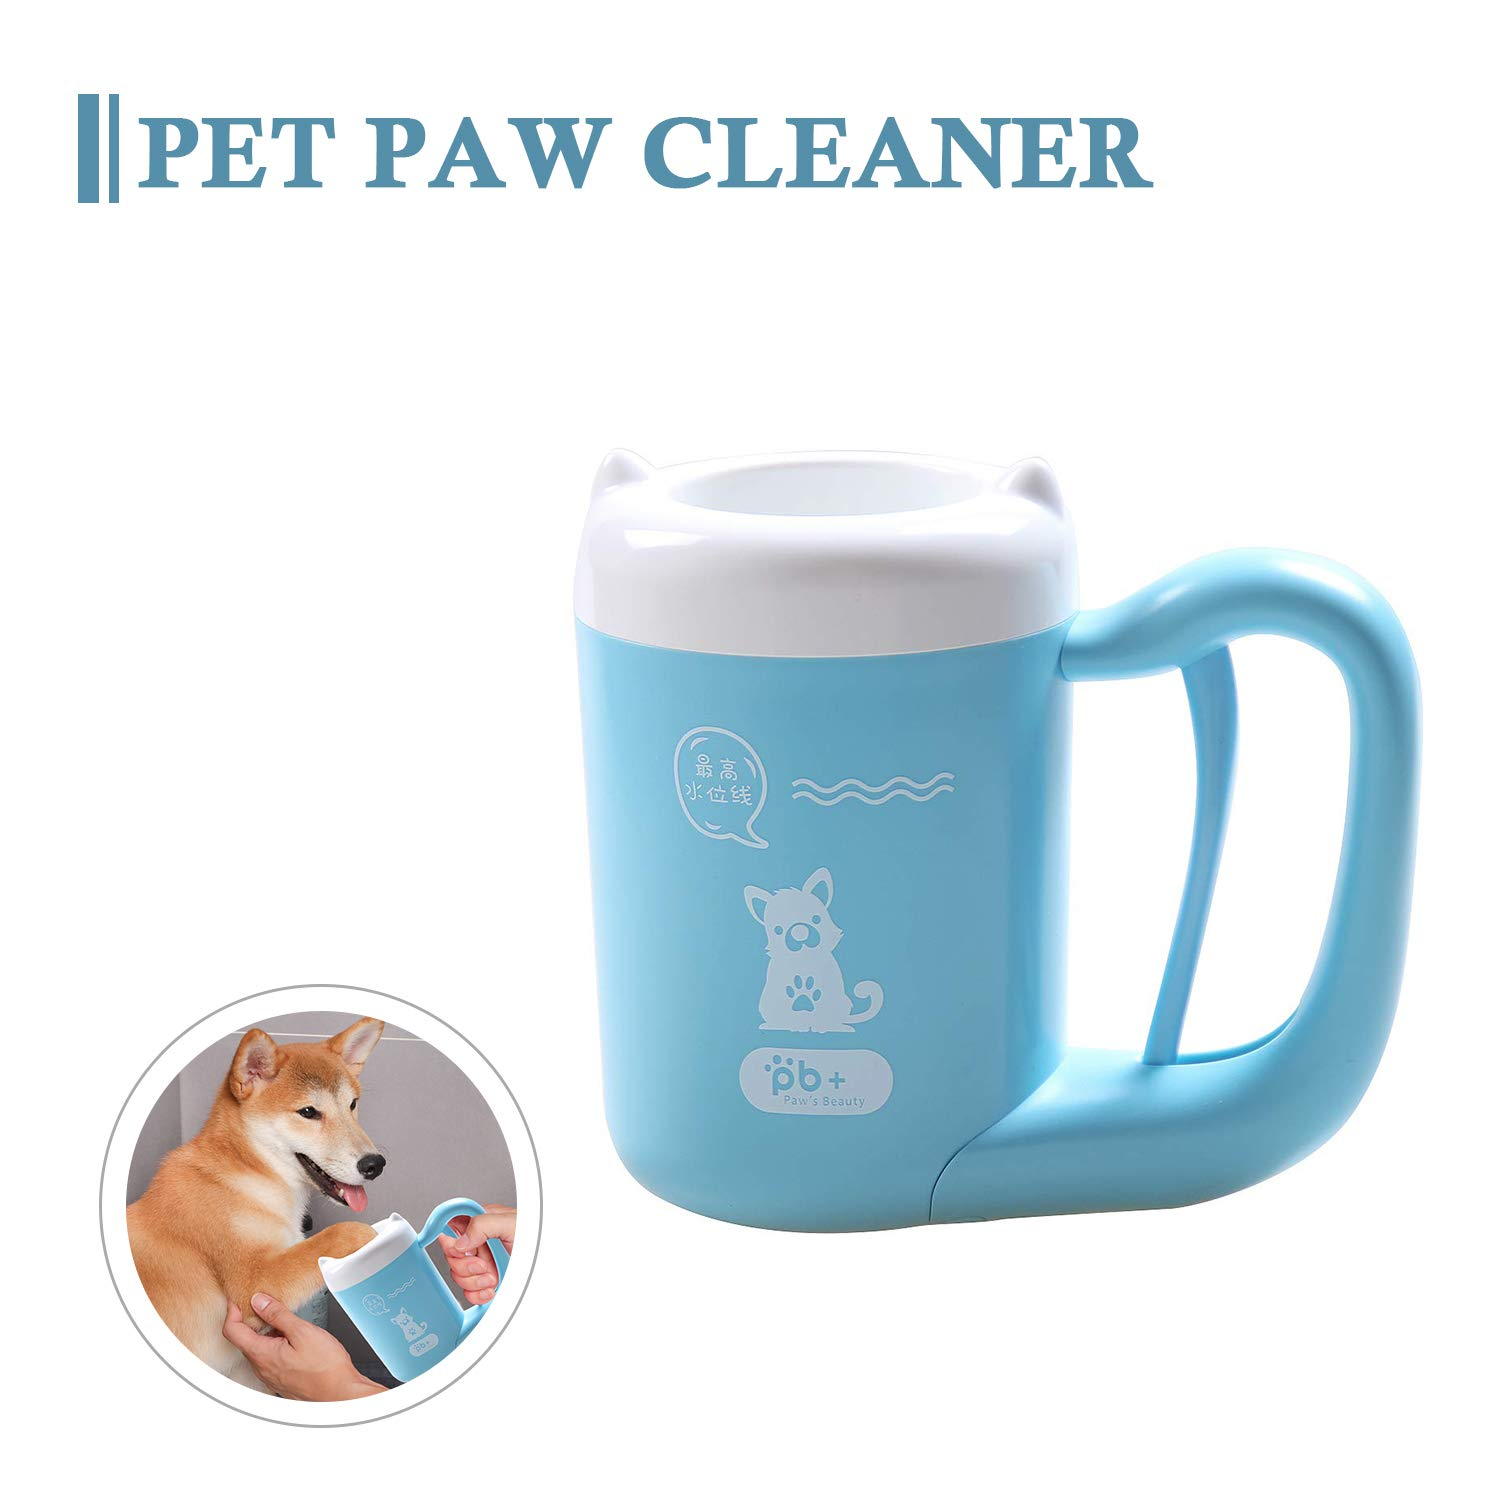 Pet Paw Cleaner Paw Plunger for Dogs, Portable Paw Clean Washer, Suits for Small Medium Dogs, No More Footprints, Soft Silicone Brush